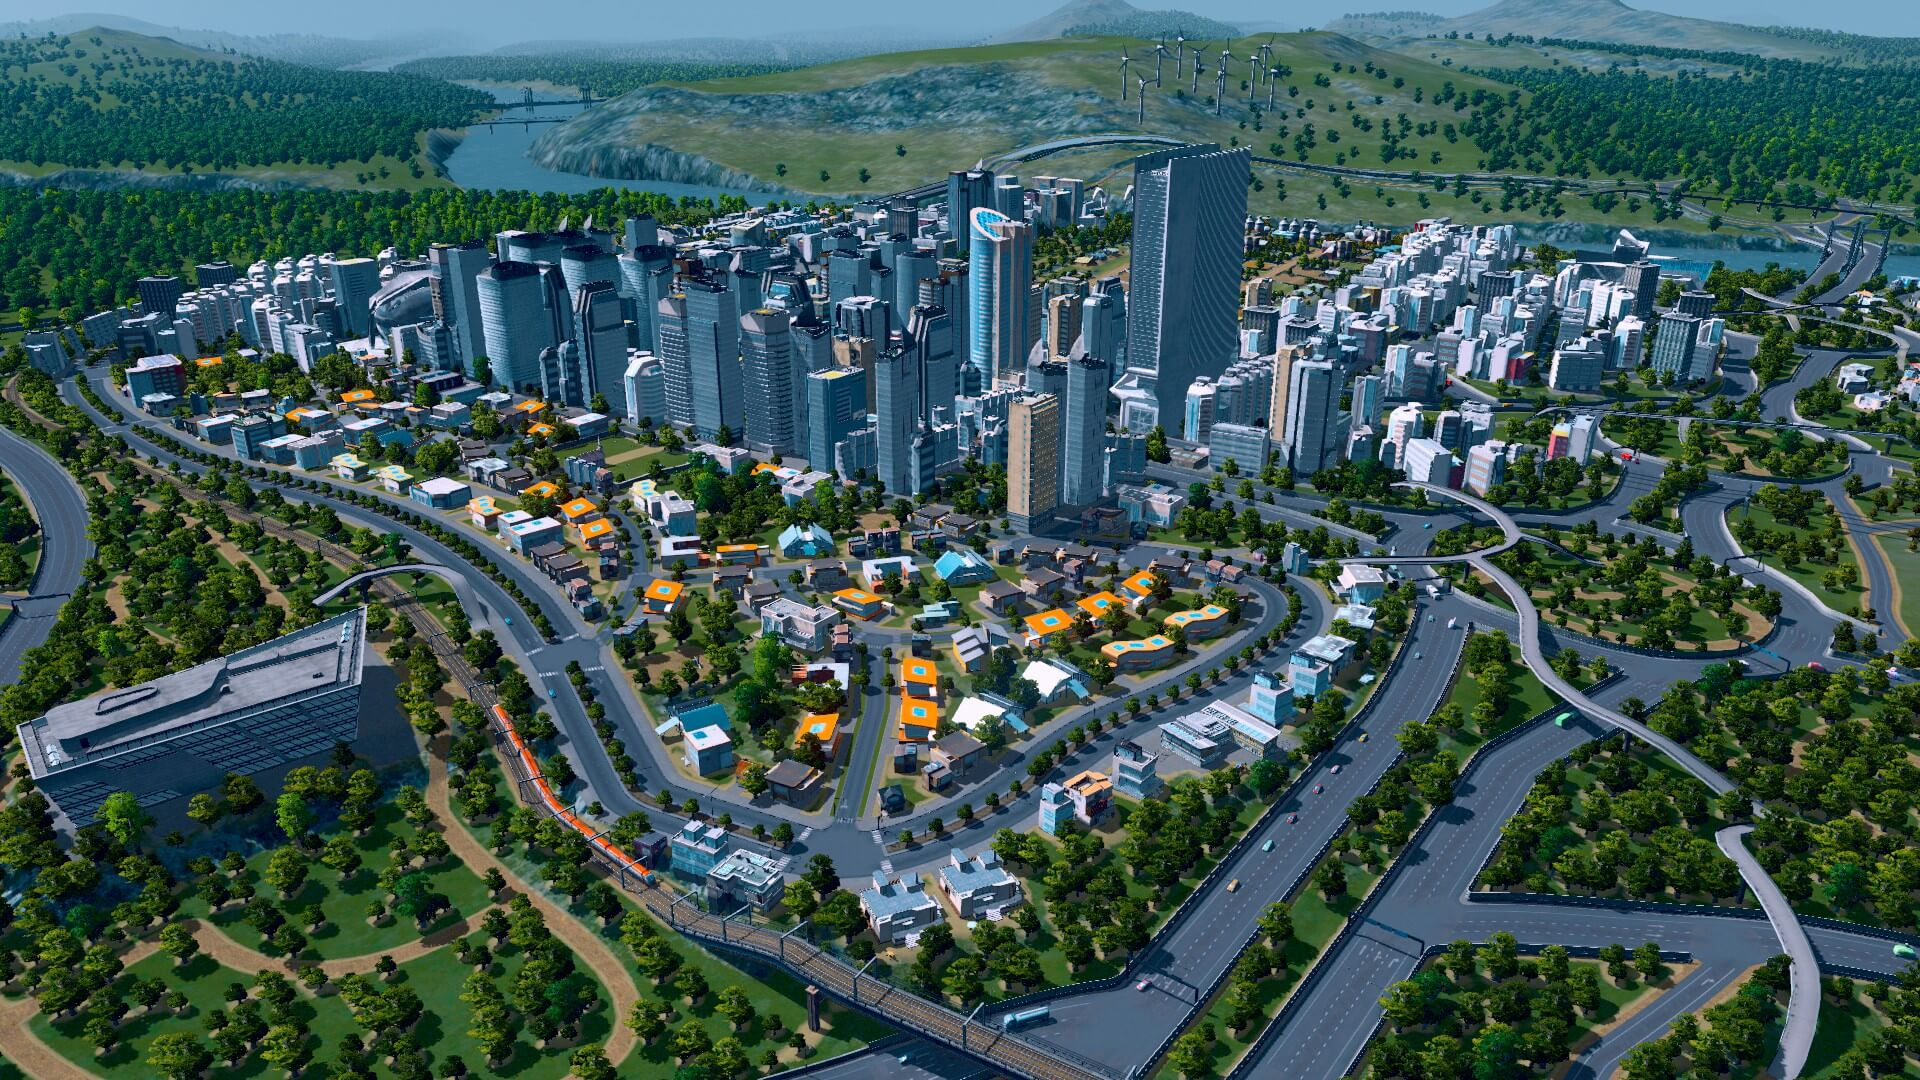 How To Download Cities Skylines Torrent For PC